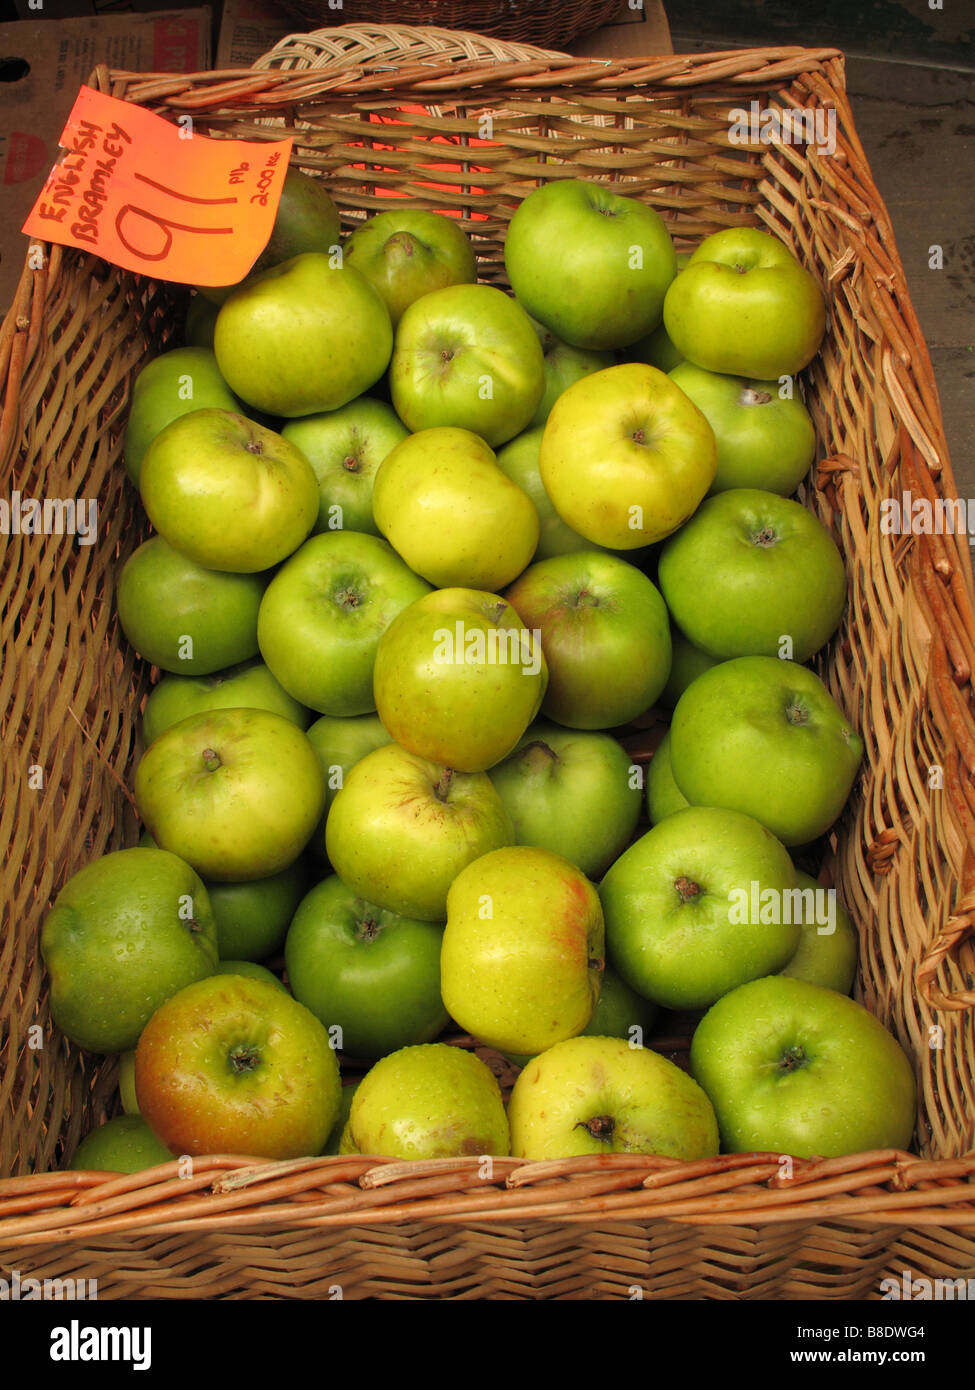 bramley apples - Stock Image